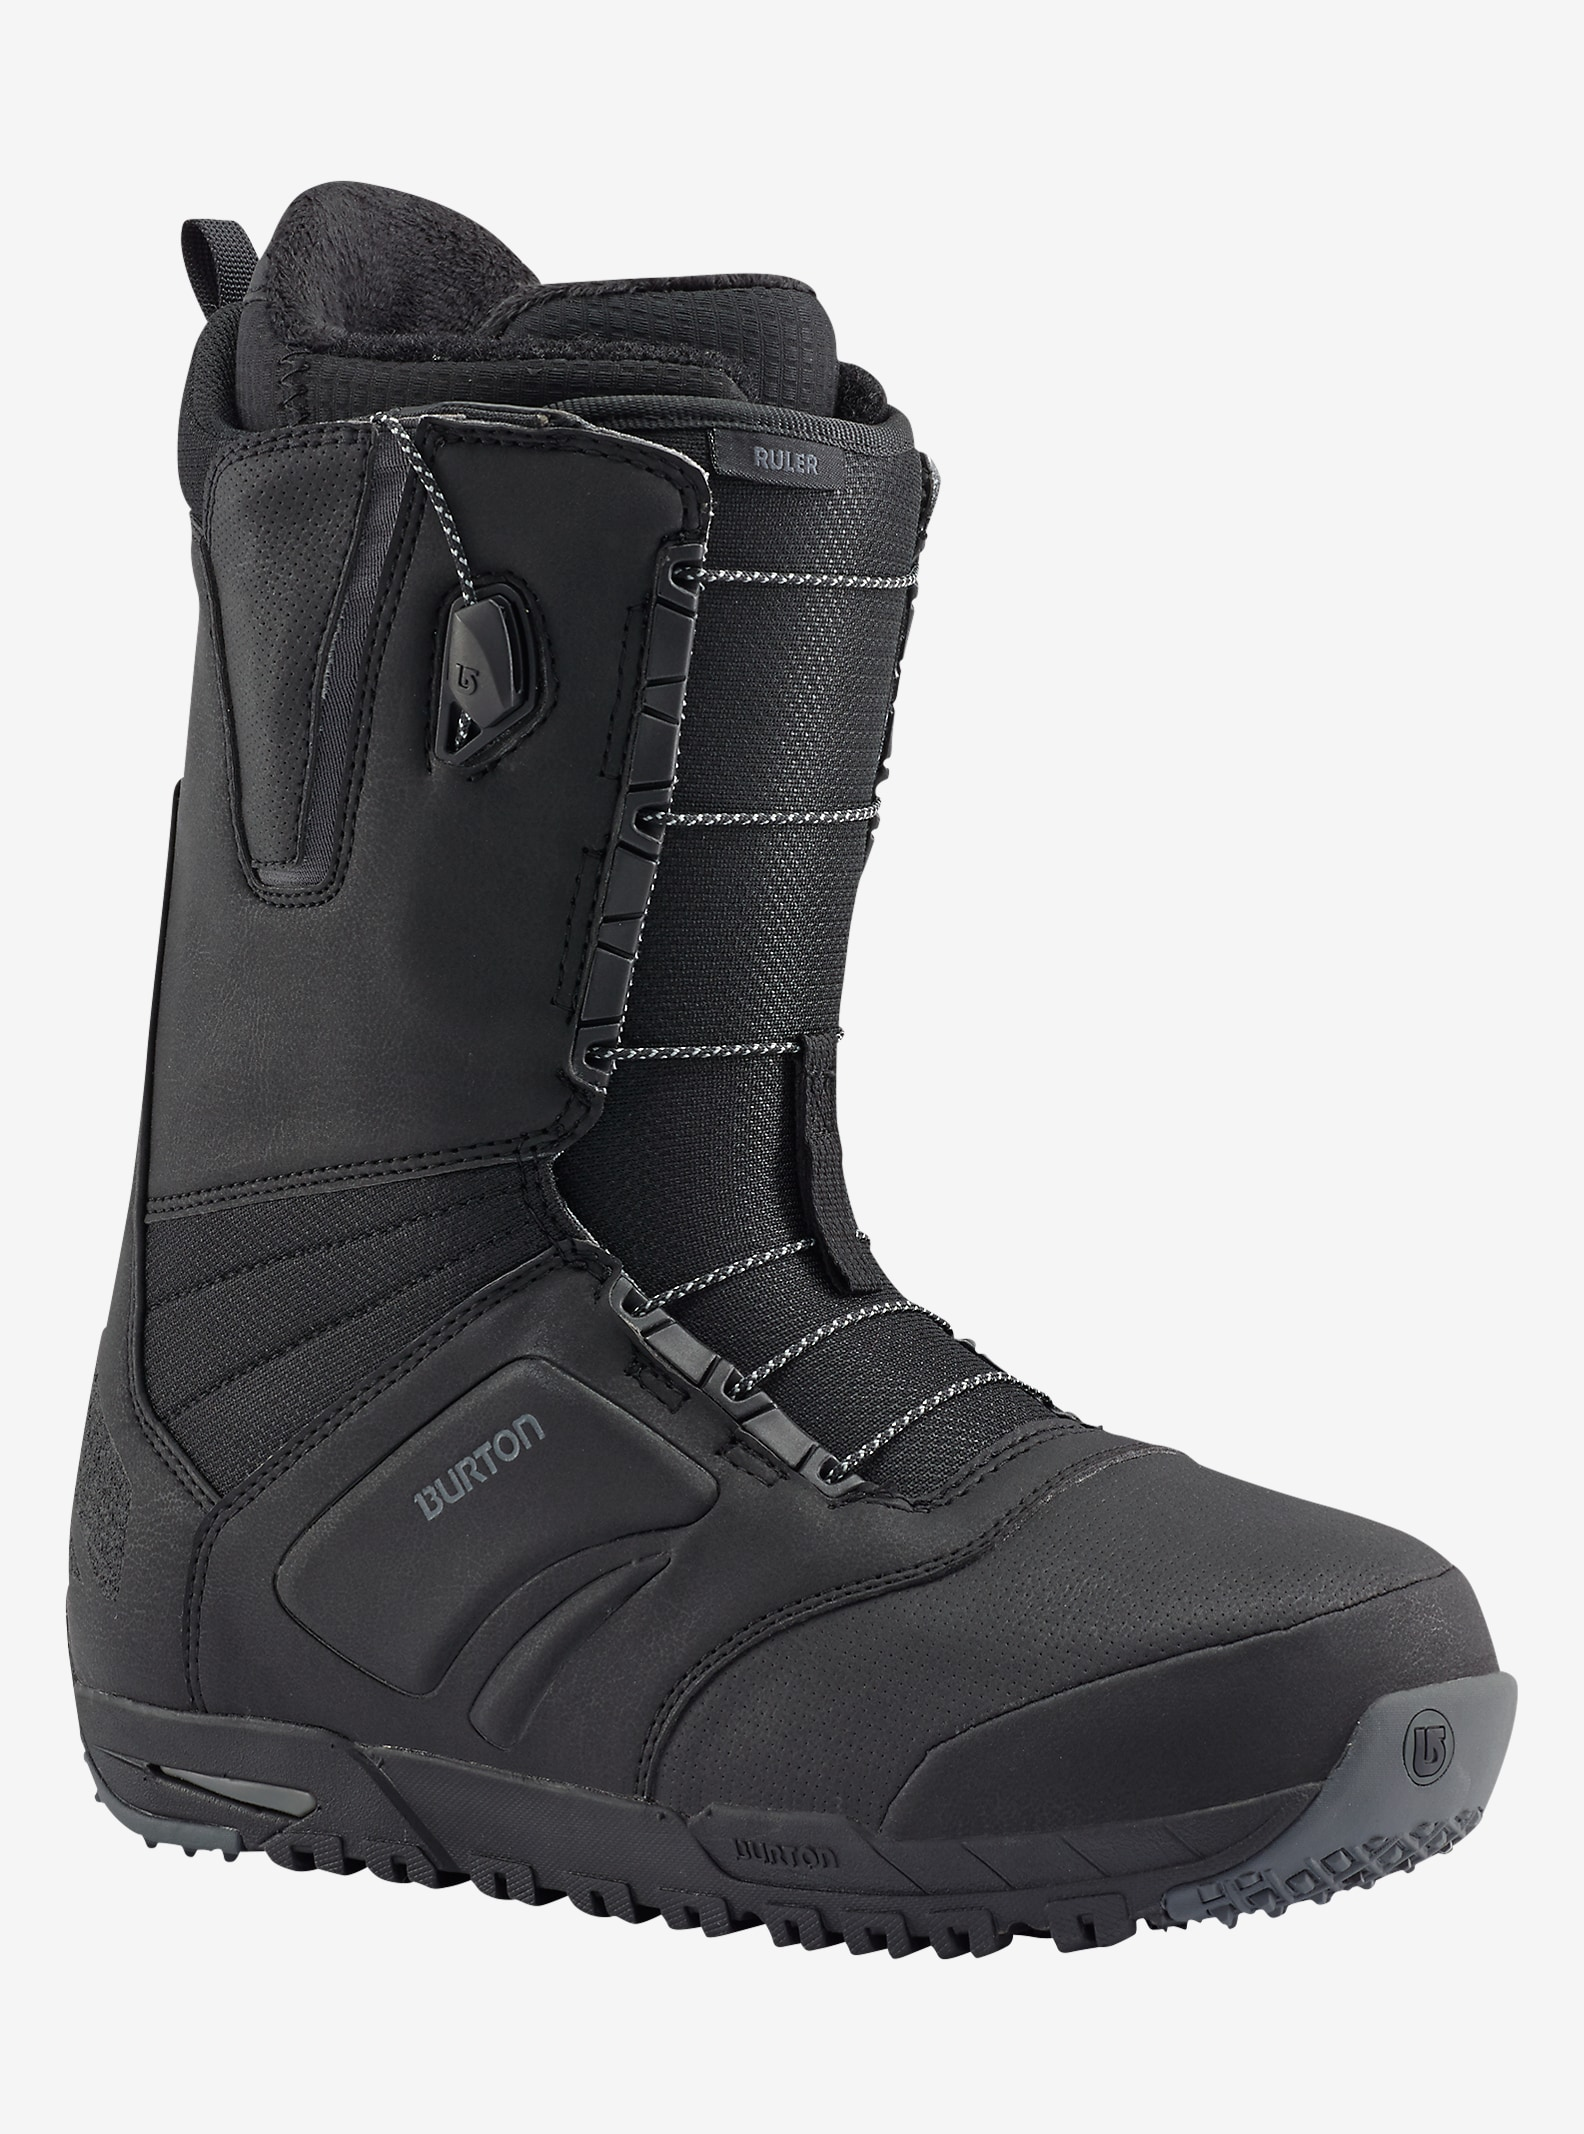 Burton Ruler Wide Snowboardboots angezeigt in Black